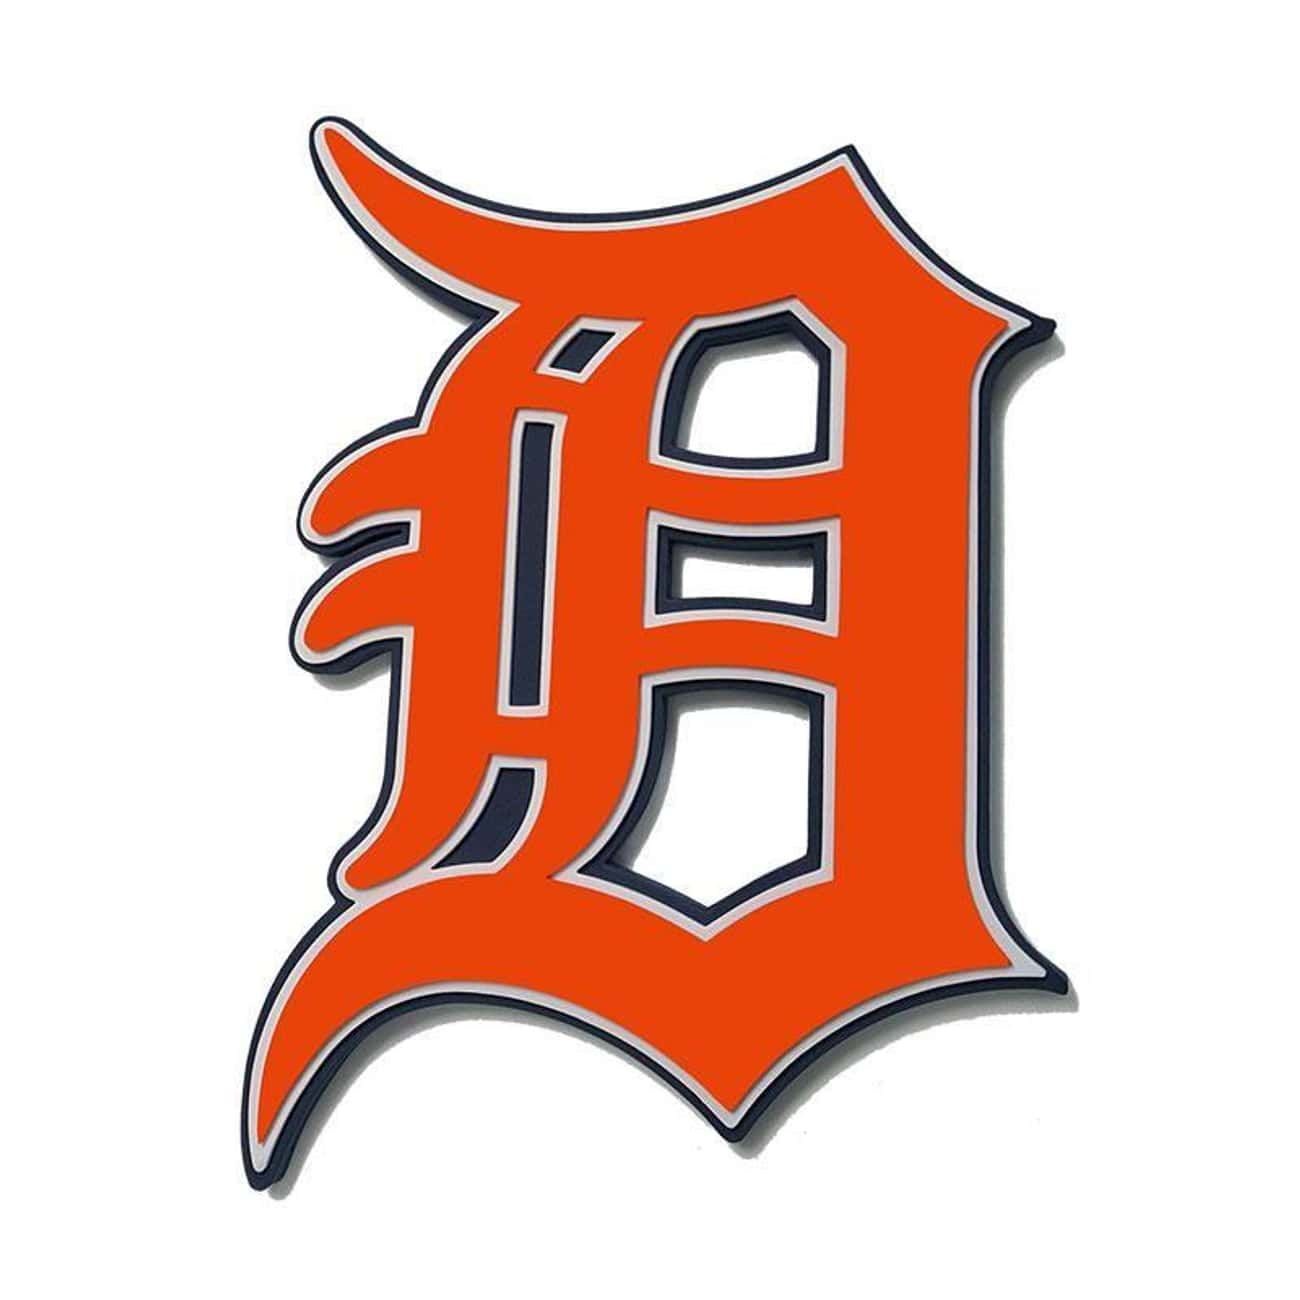 Detroit Tigers is listed (or ranked) 3 on the list The Coolest Baseball Team Logos Of All Time